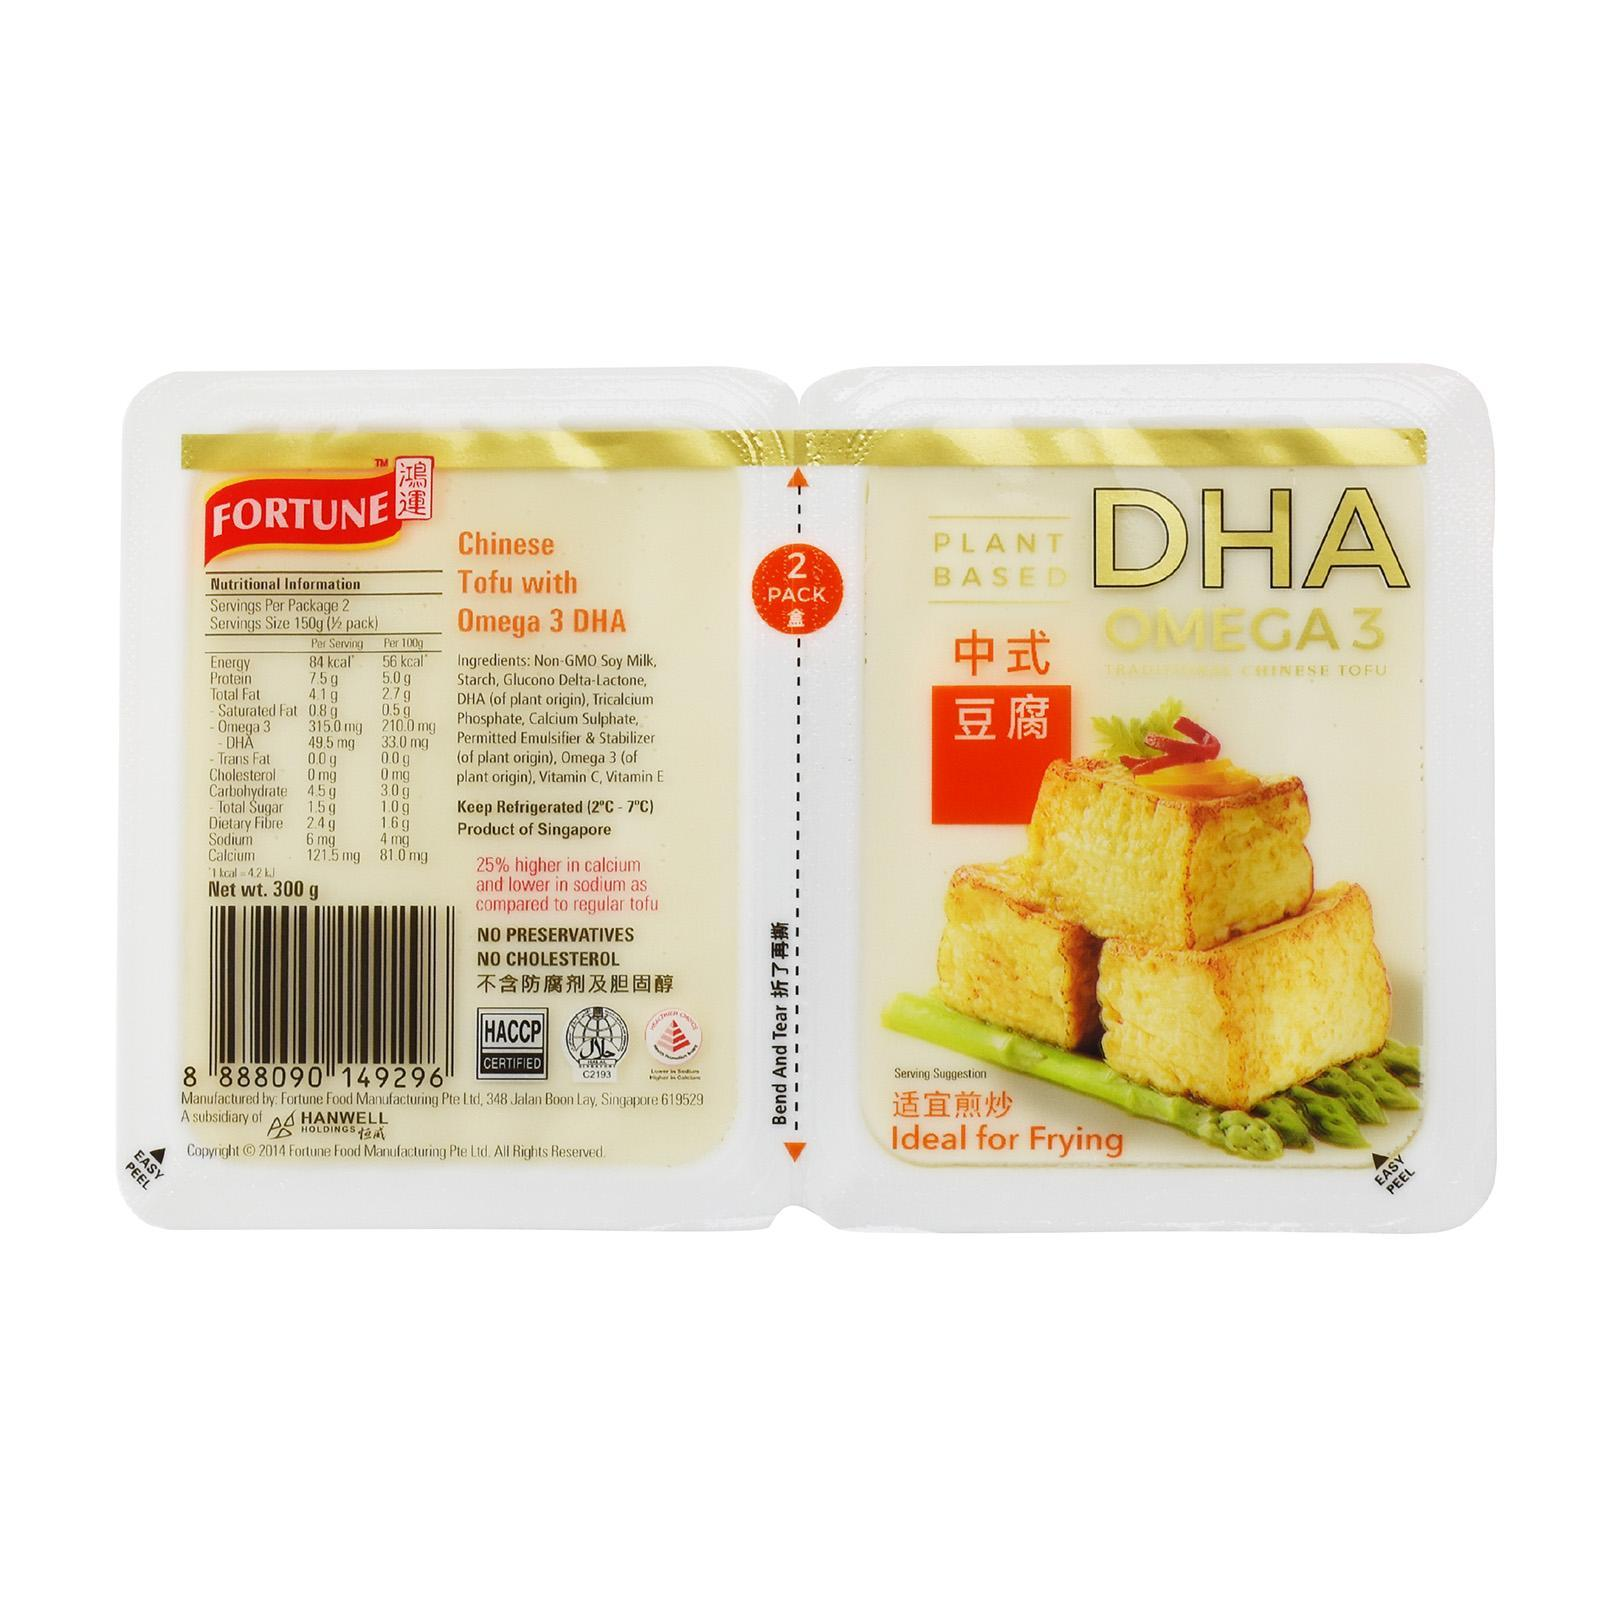 Fortune Traditional Chinese Tofu With Omega 3 DHA